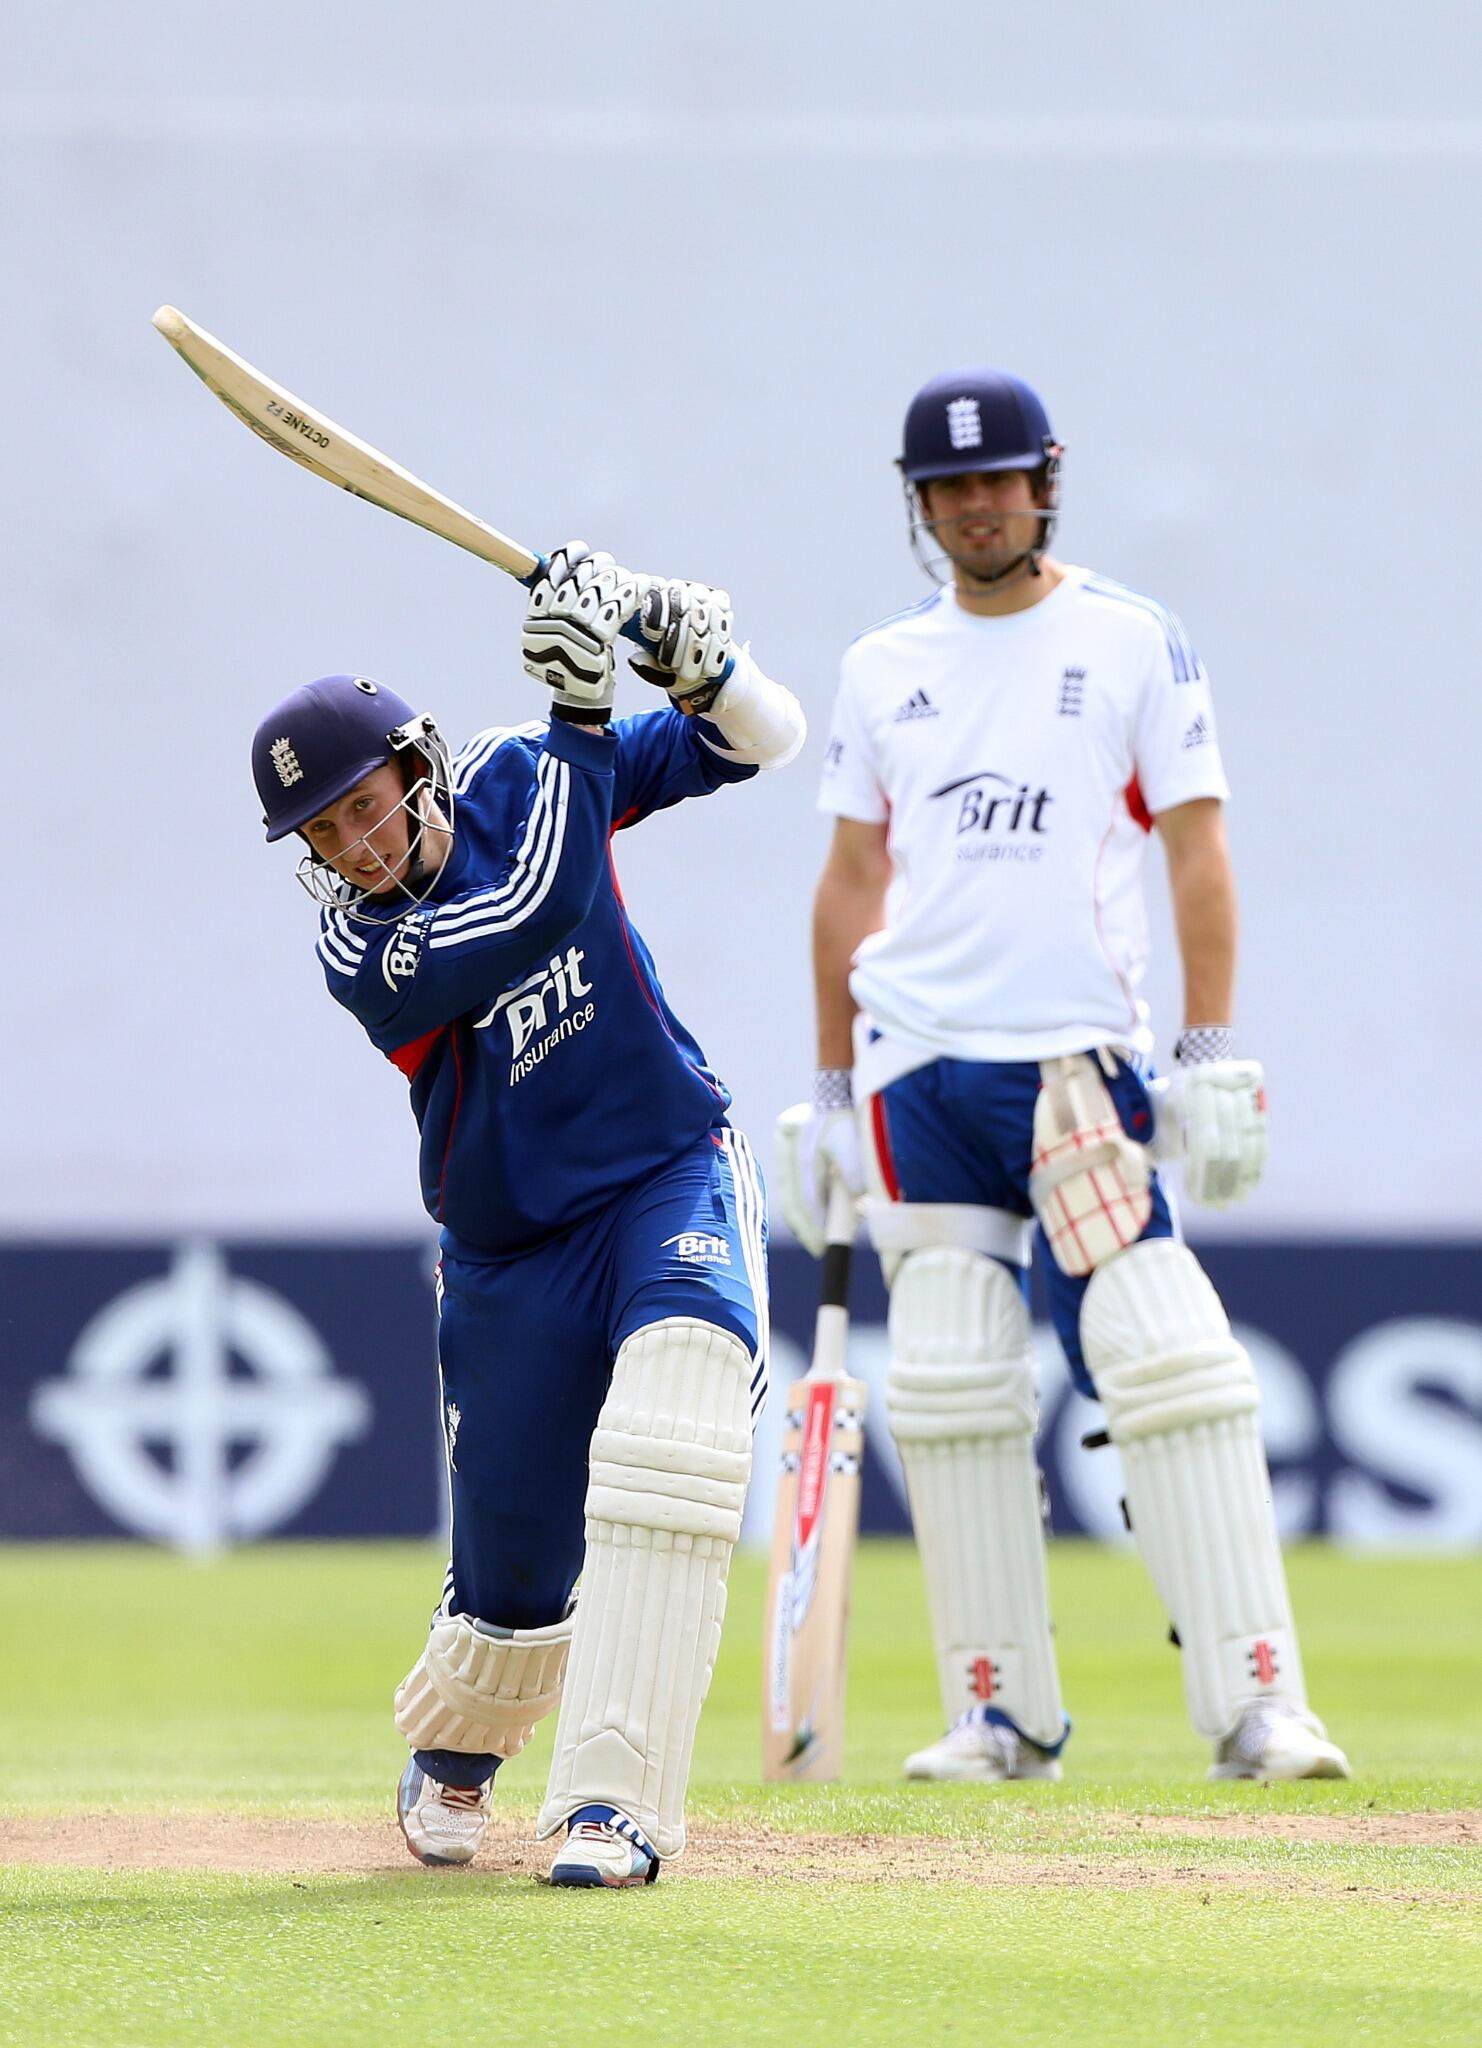 RT @Busfield: Good luck @joeroot05. @Yorkshireccc lad playing for England at Headingley for the first time http://t.co/csV9Tz2m7o